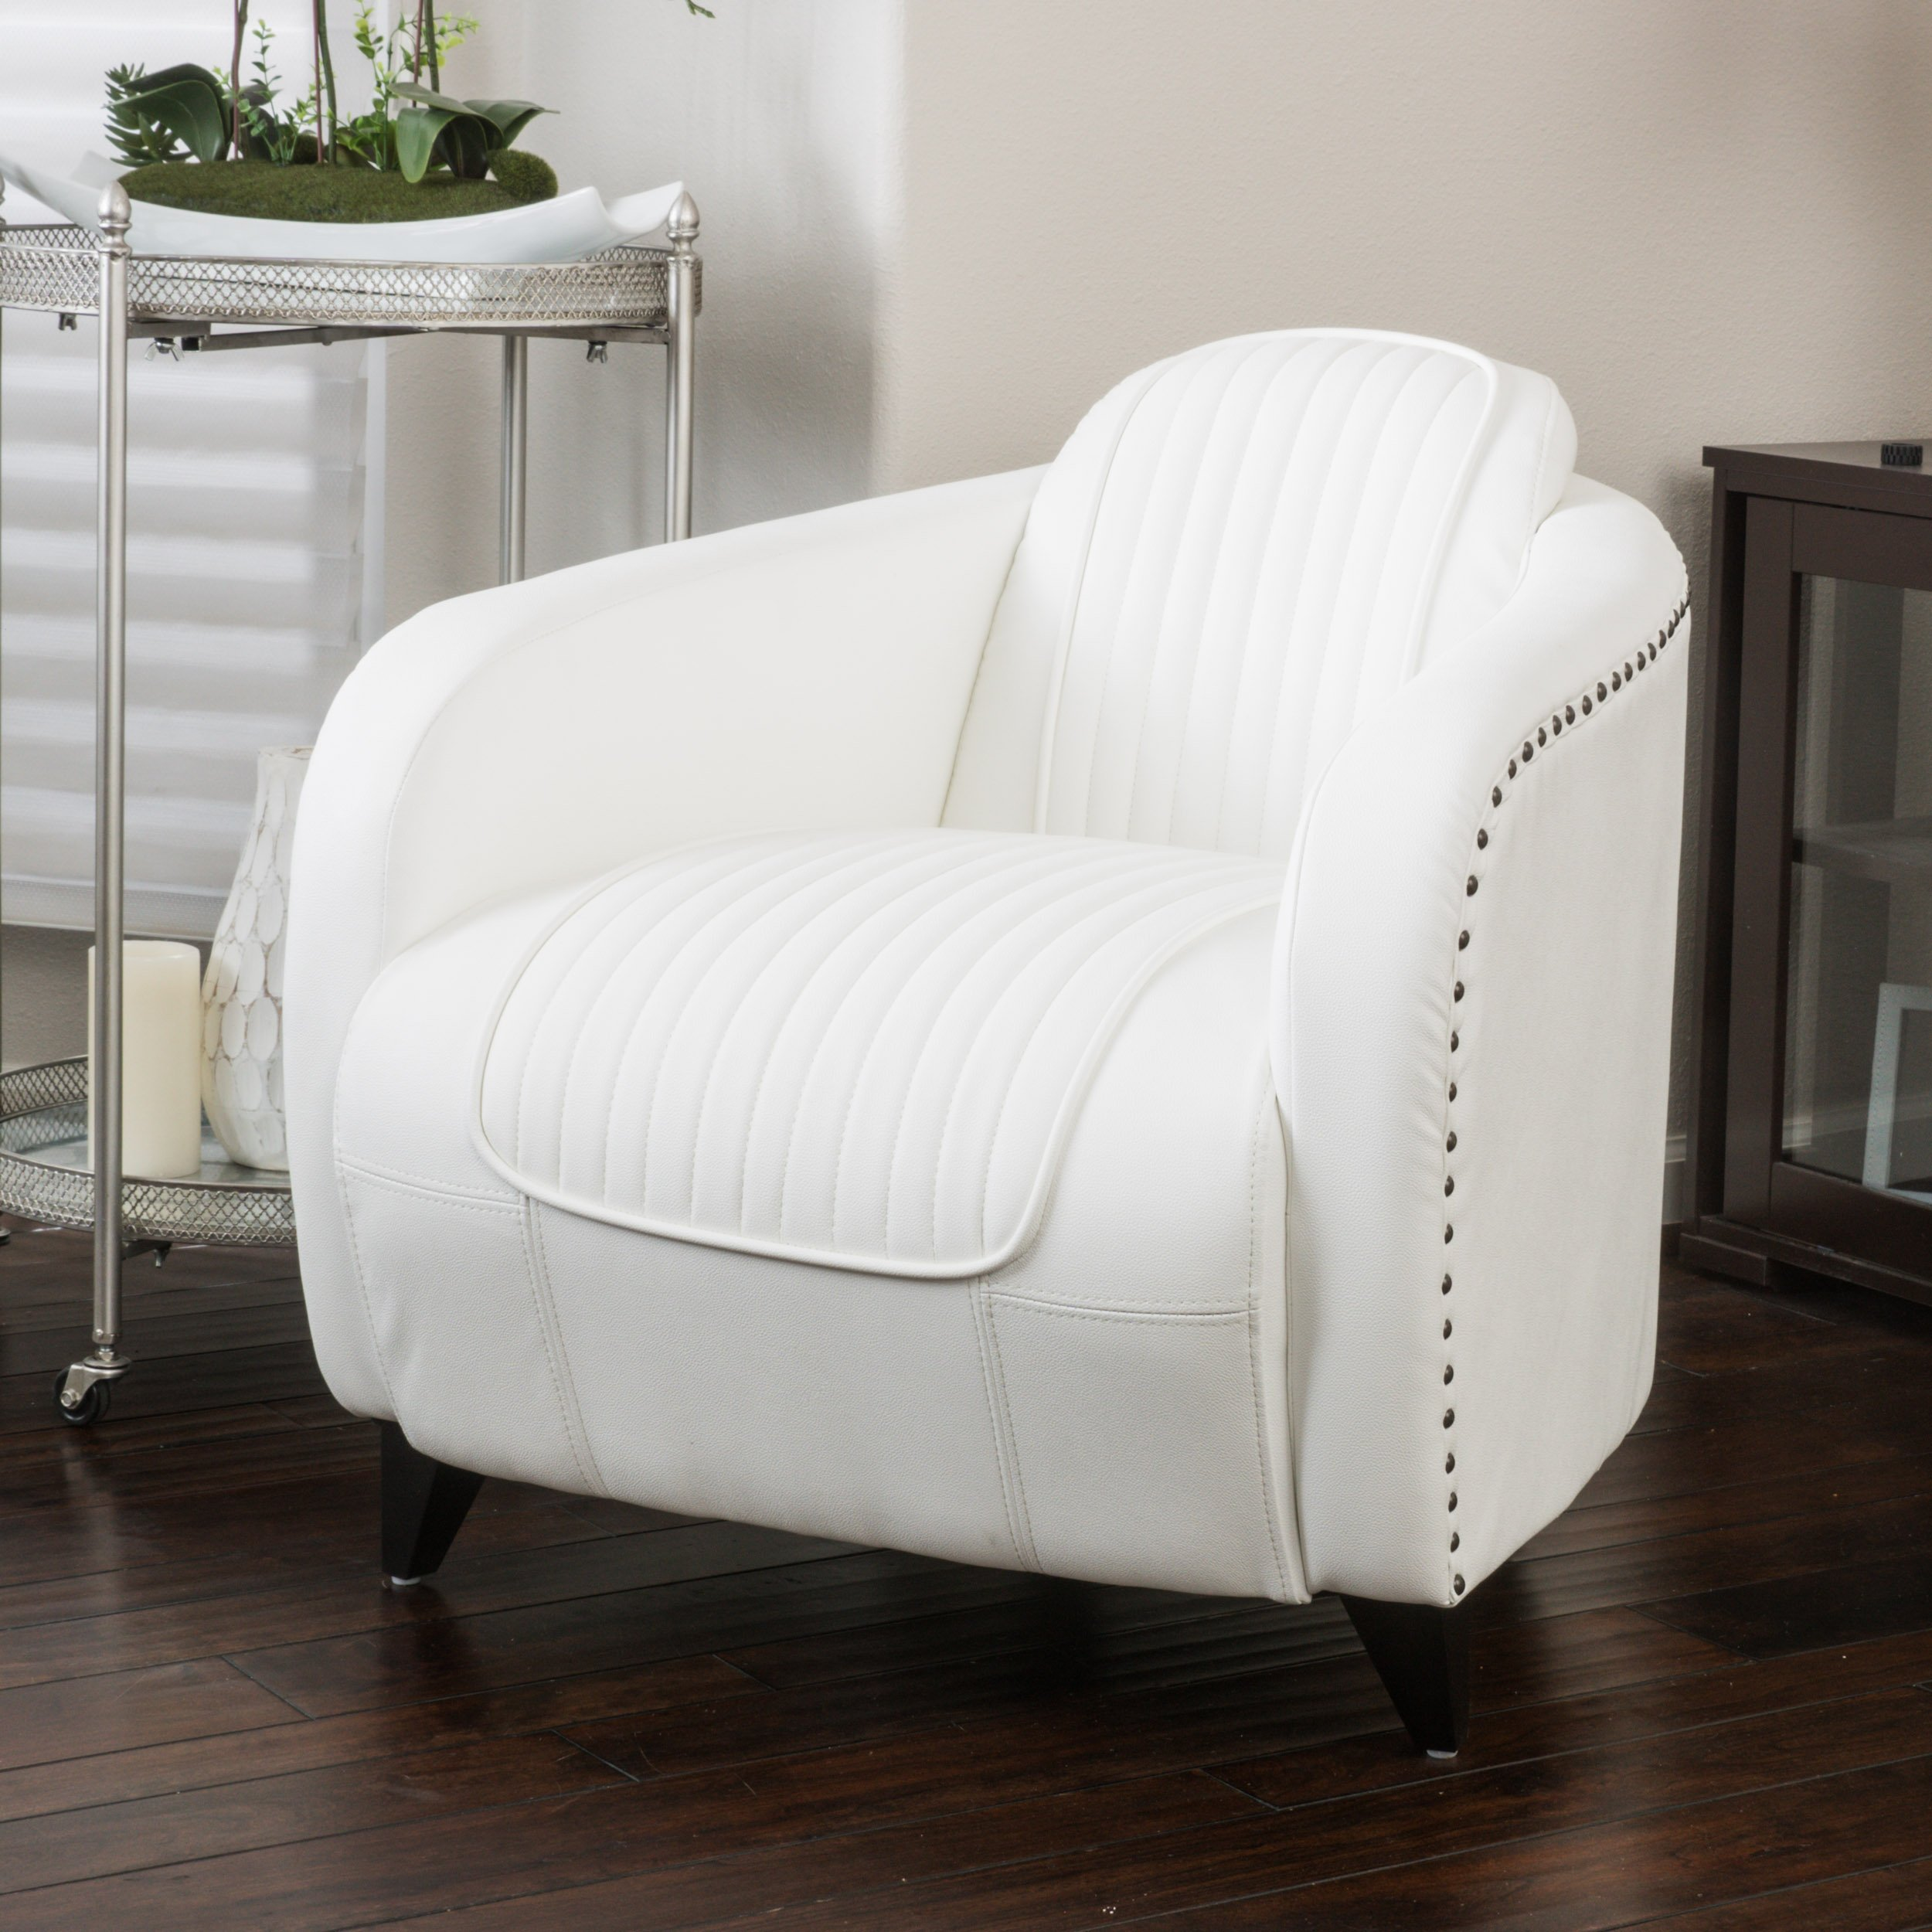 Christopher Knight Home Lemay Channeled White Leather Club Chair by Christopher Knight Home